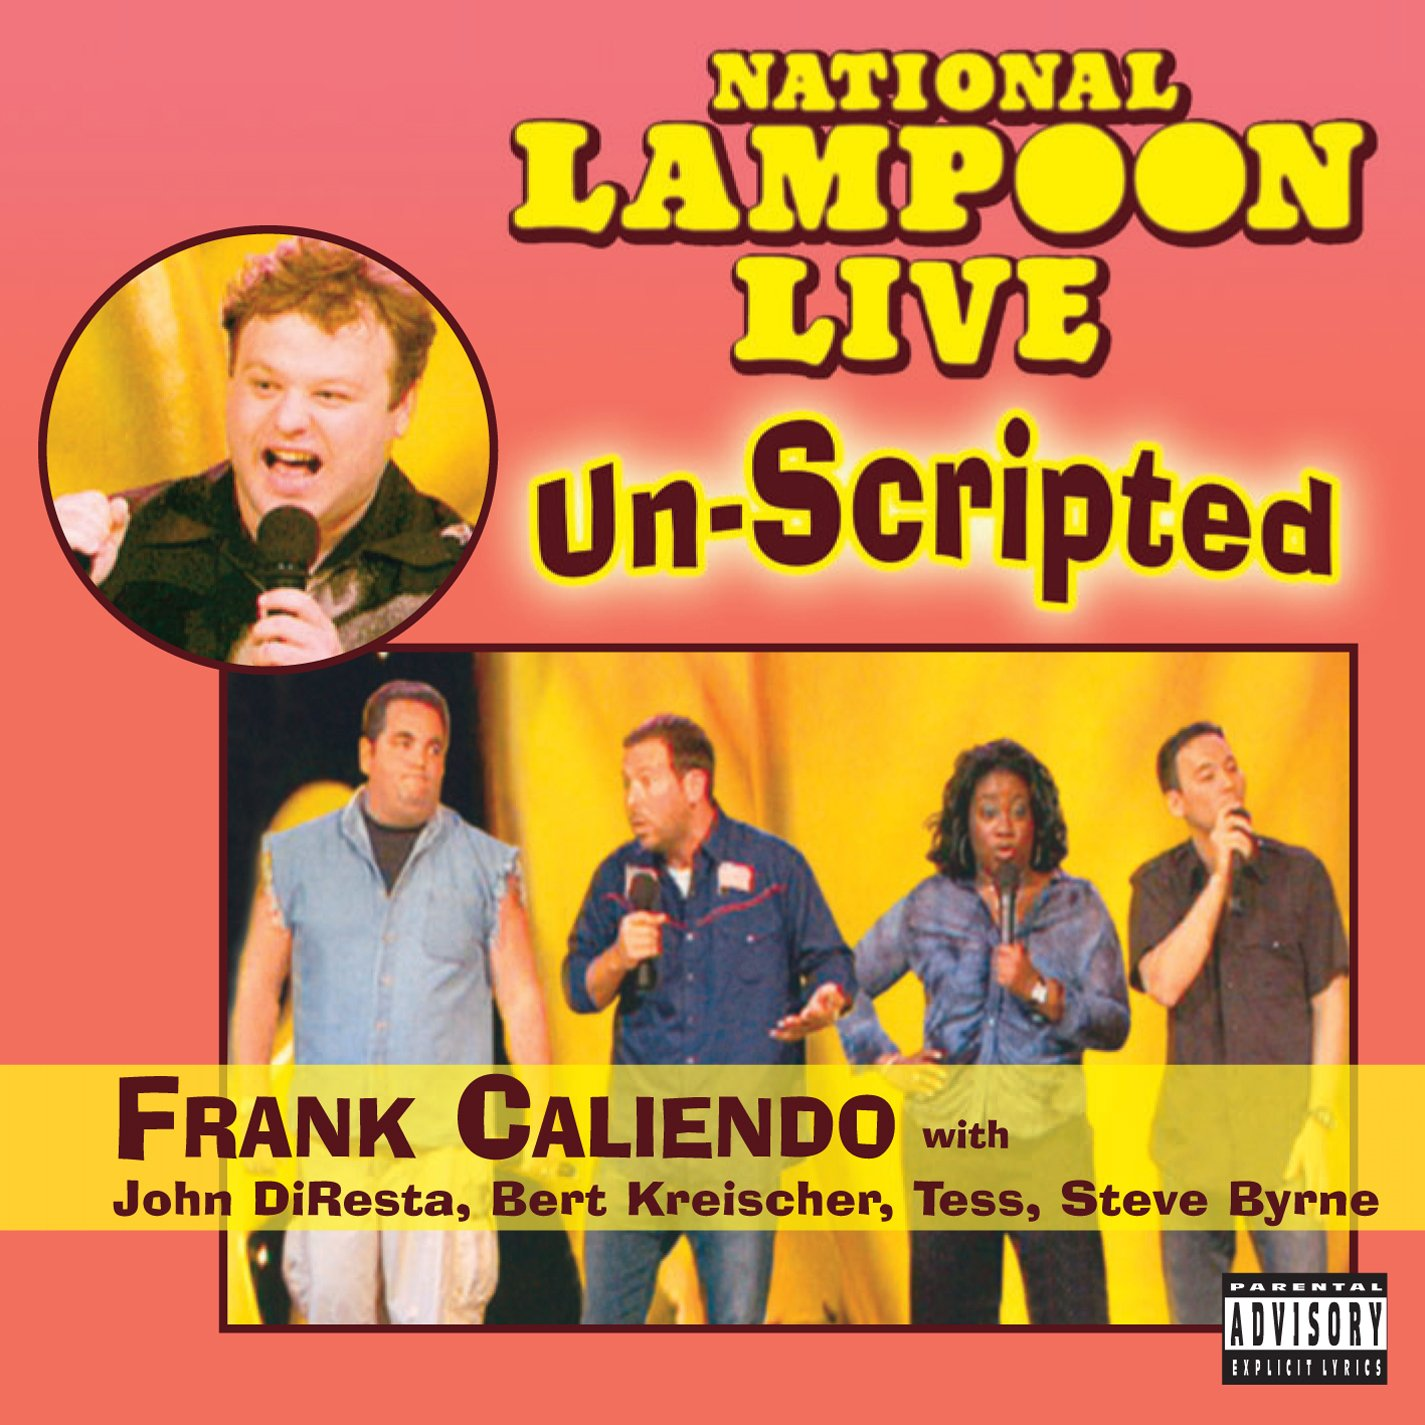 National Lampoon Live: Unscripted (Frank Caliendo, John Diresta, Bert Kreischer, etc.)